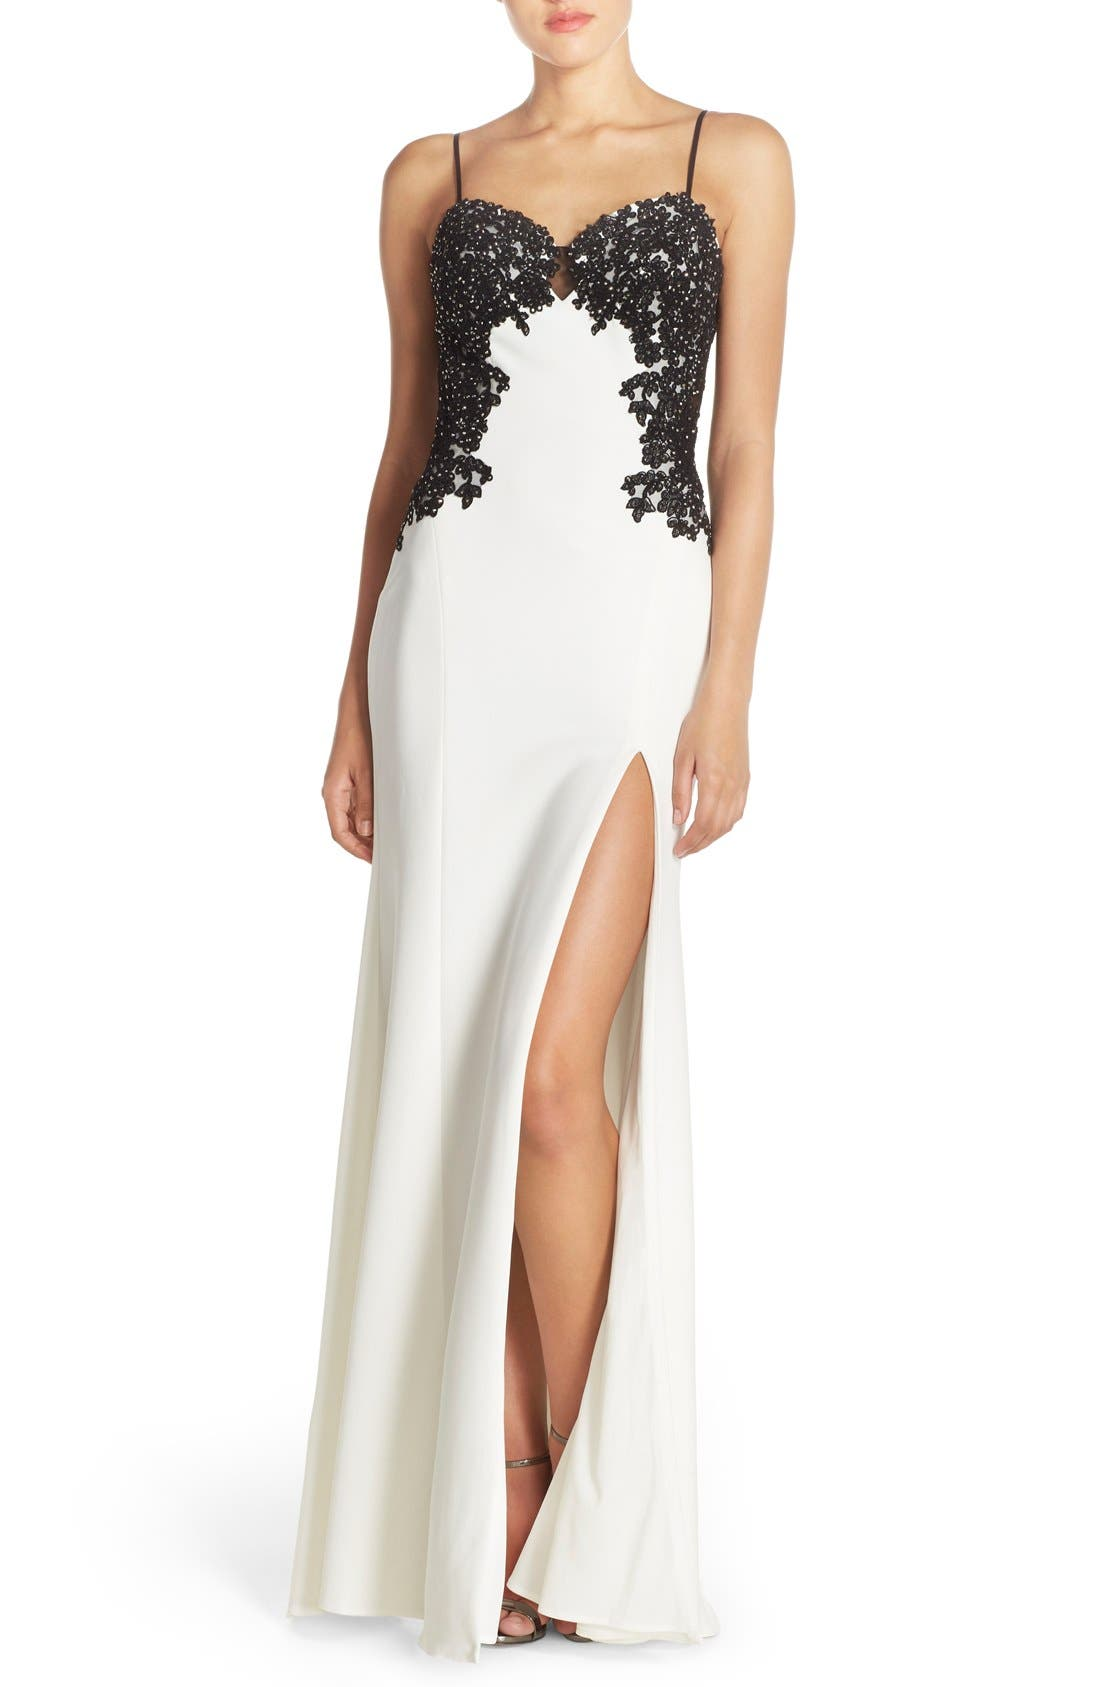 Alternate Image 1 Selected - Faviana Spaghetti Strap Gown with Beaded Floral Lace